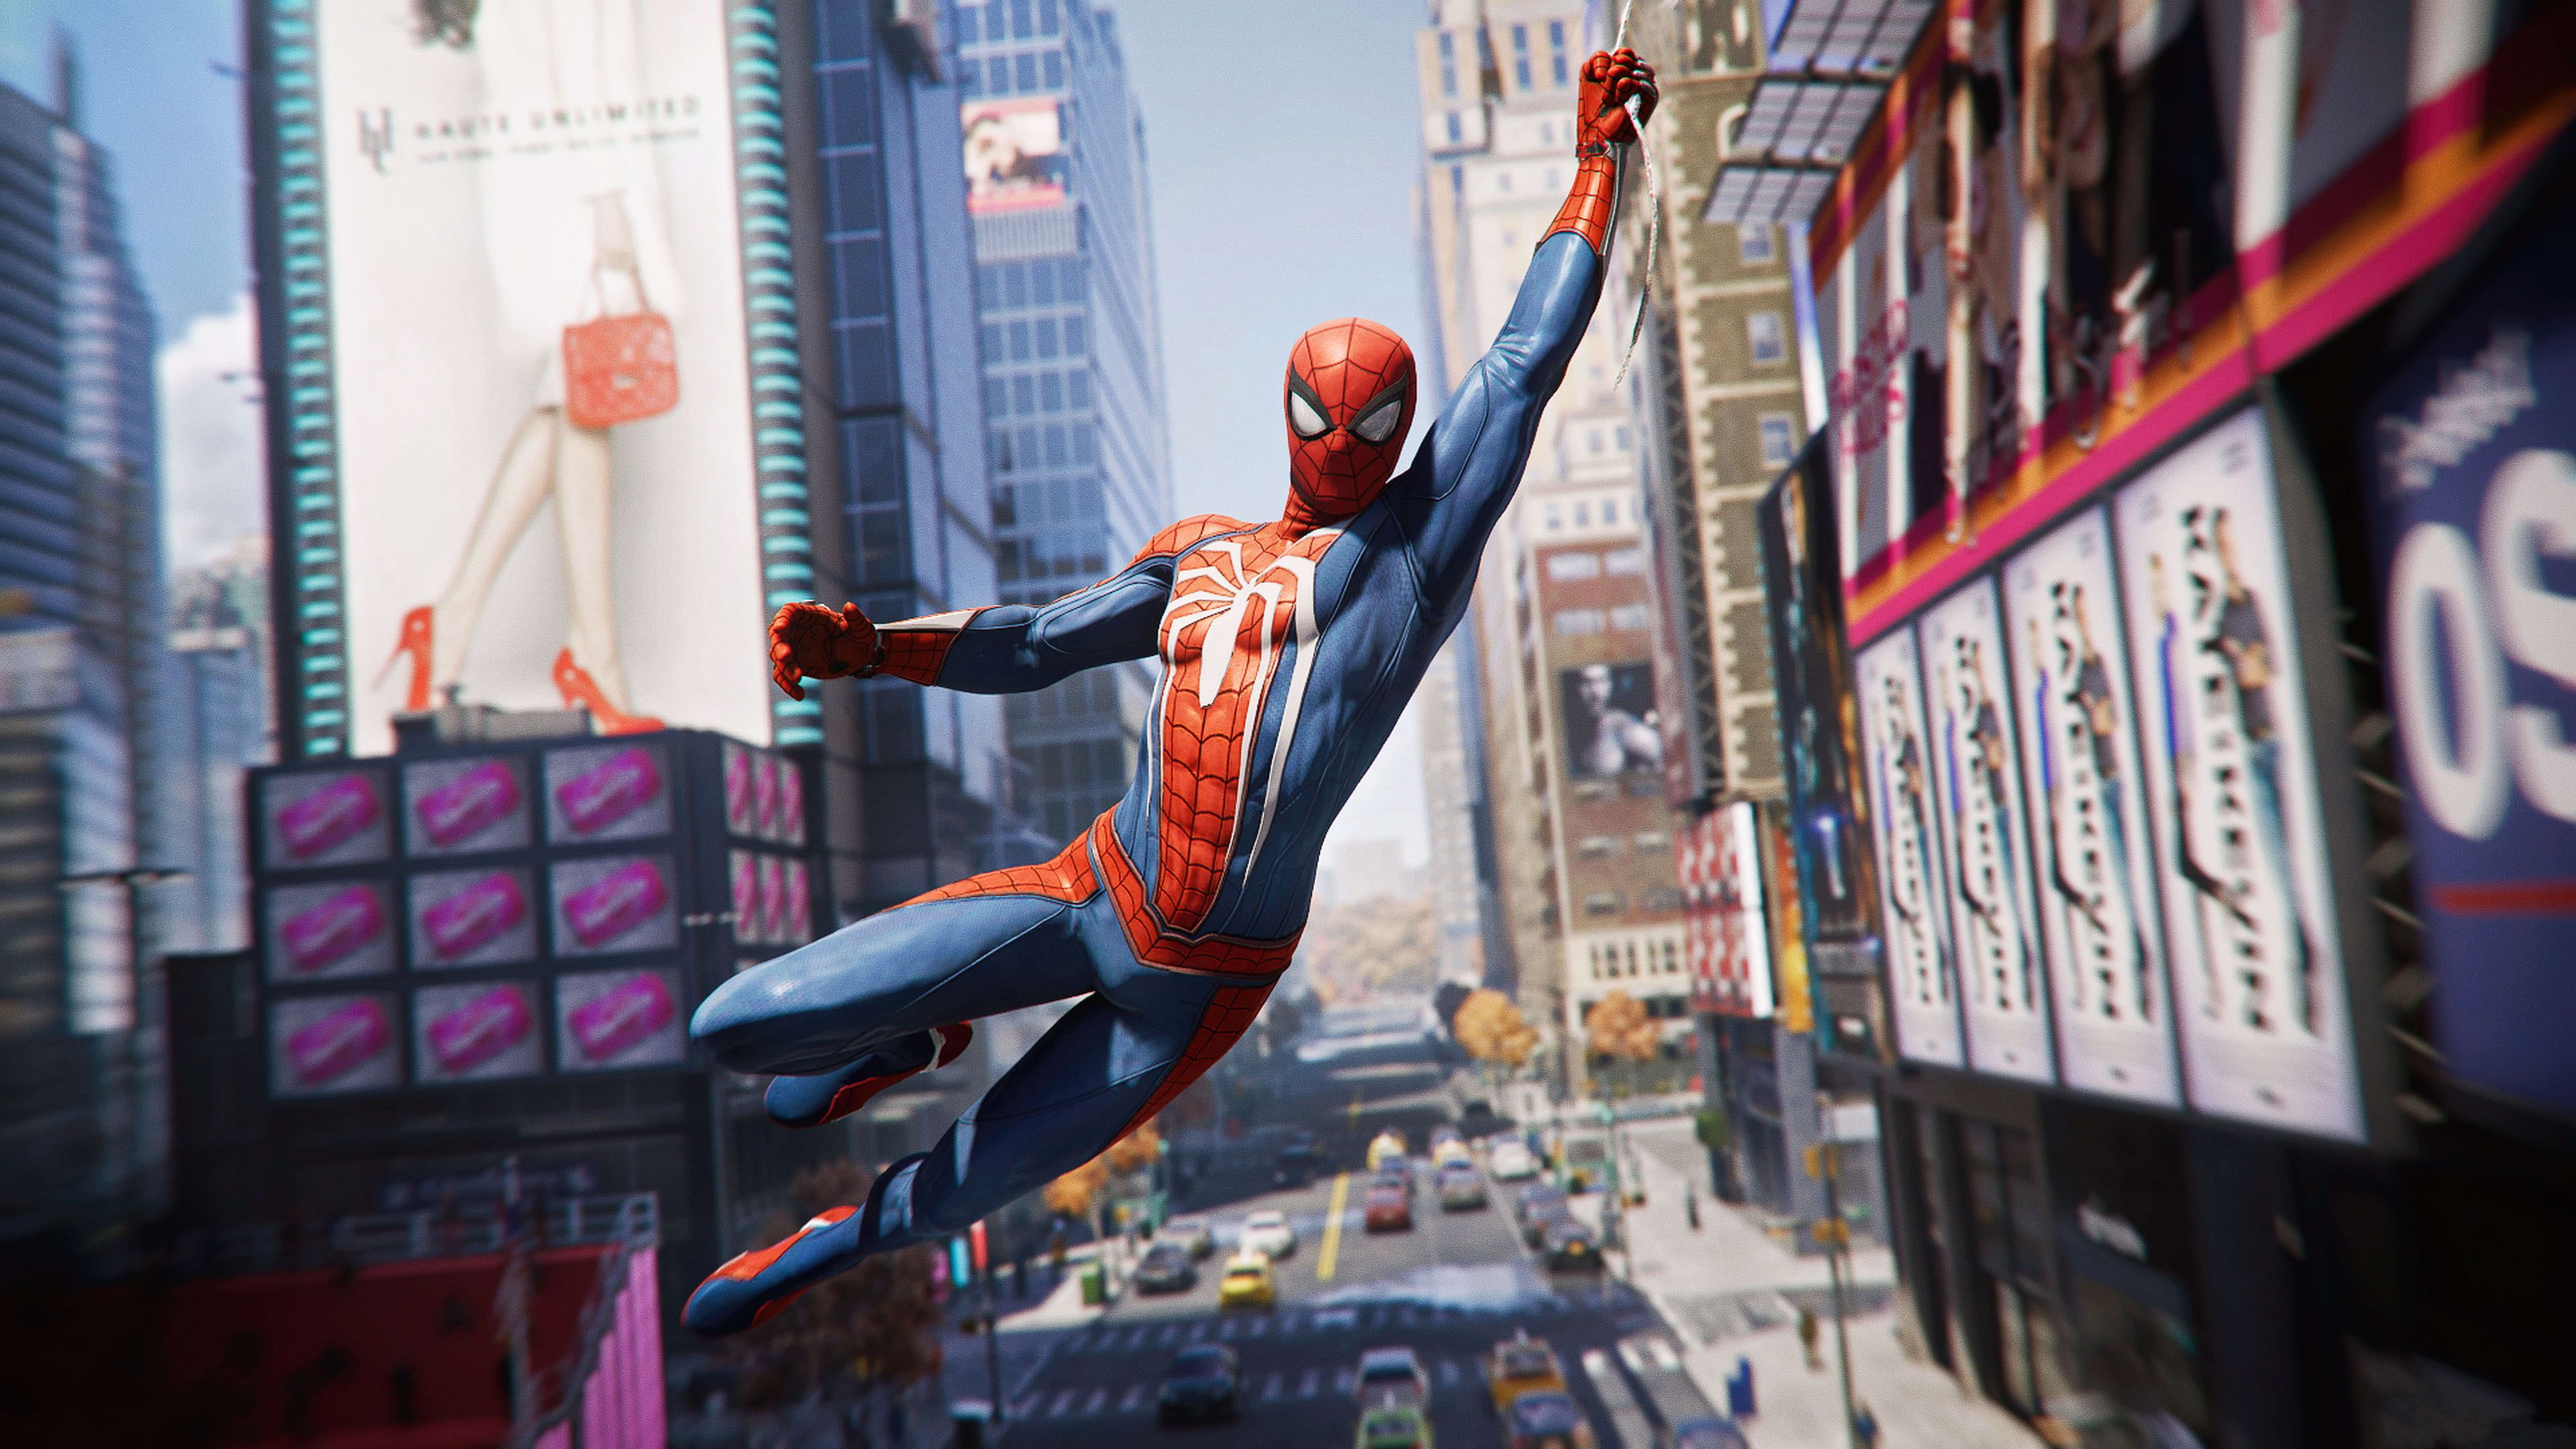 Marvel Spider Man Digital Wallpaper Marvel Comics Spider Man 2018 Spider Man 4k Wallpaper H Spider Man Playstation Spiderman Ps4 Spider Man Playstation 4